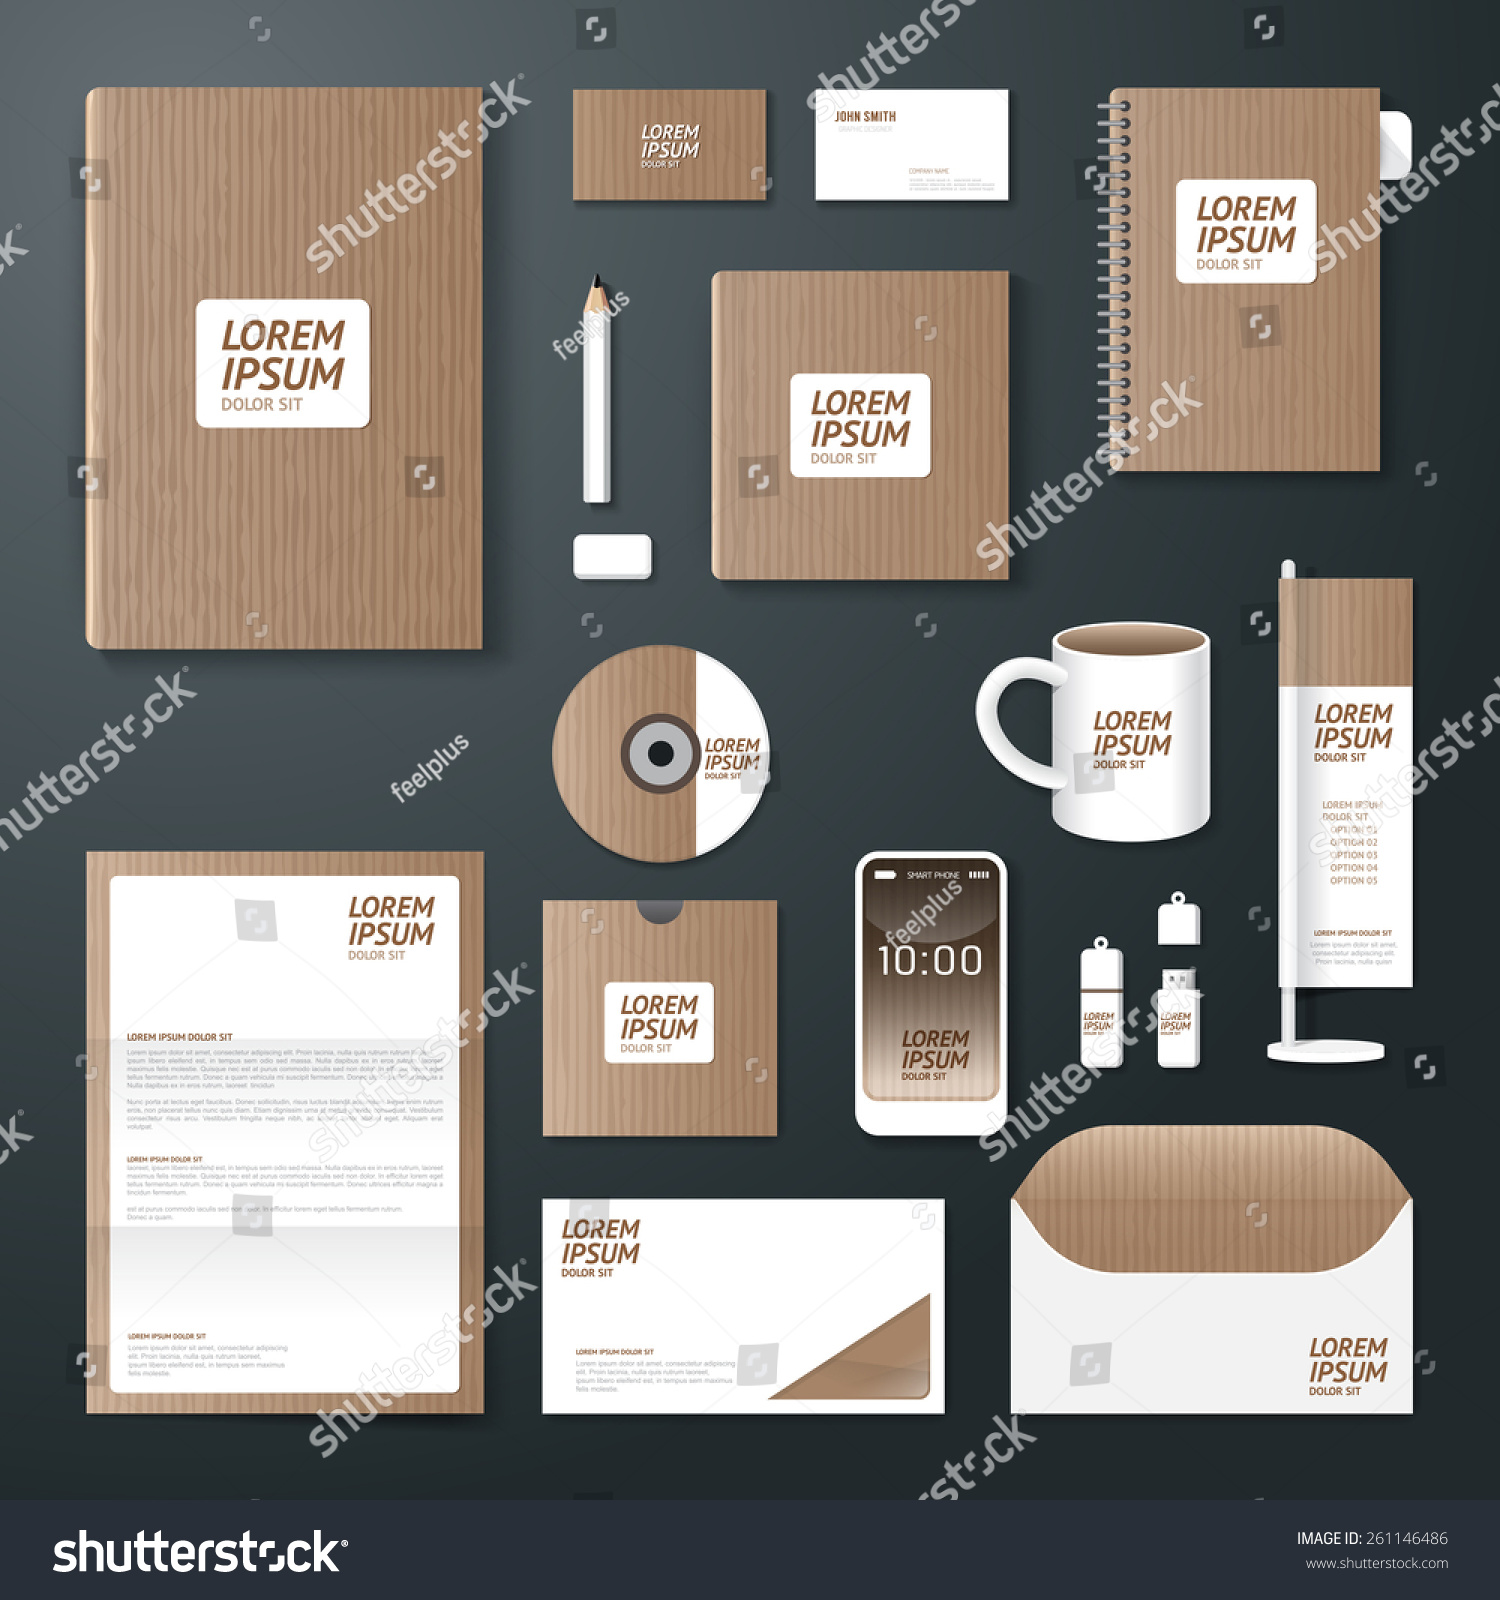 Poster design size - Vector Brochure Flyer Magazine Cover Booklet Poster Design Template Layout Business Stationery Annual